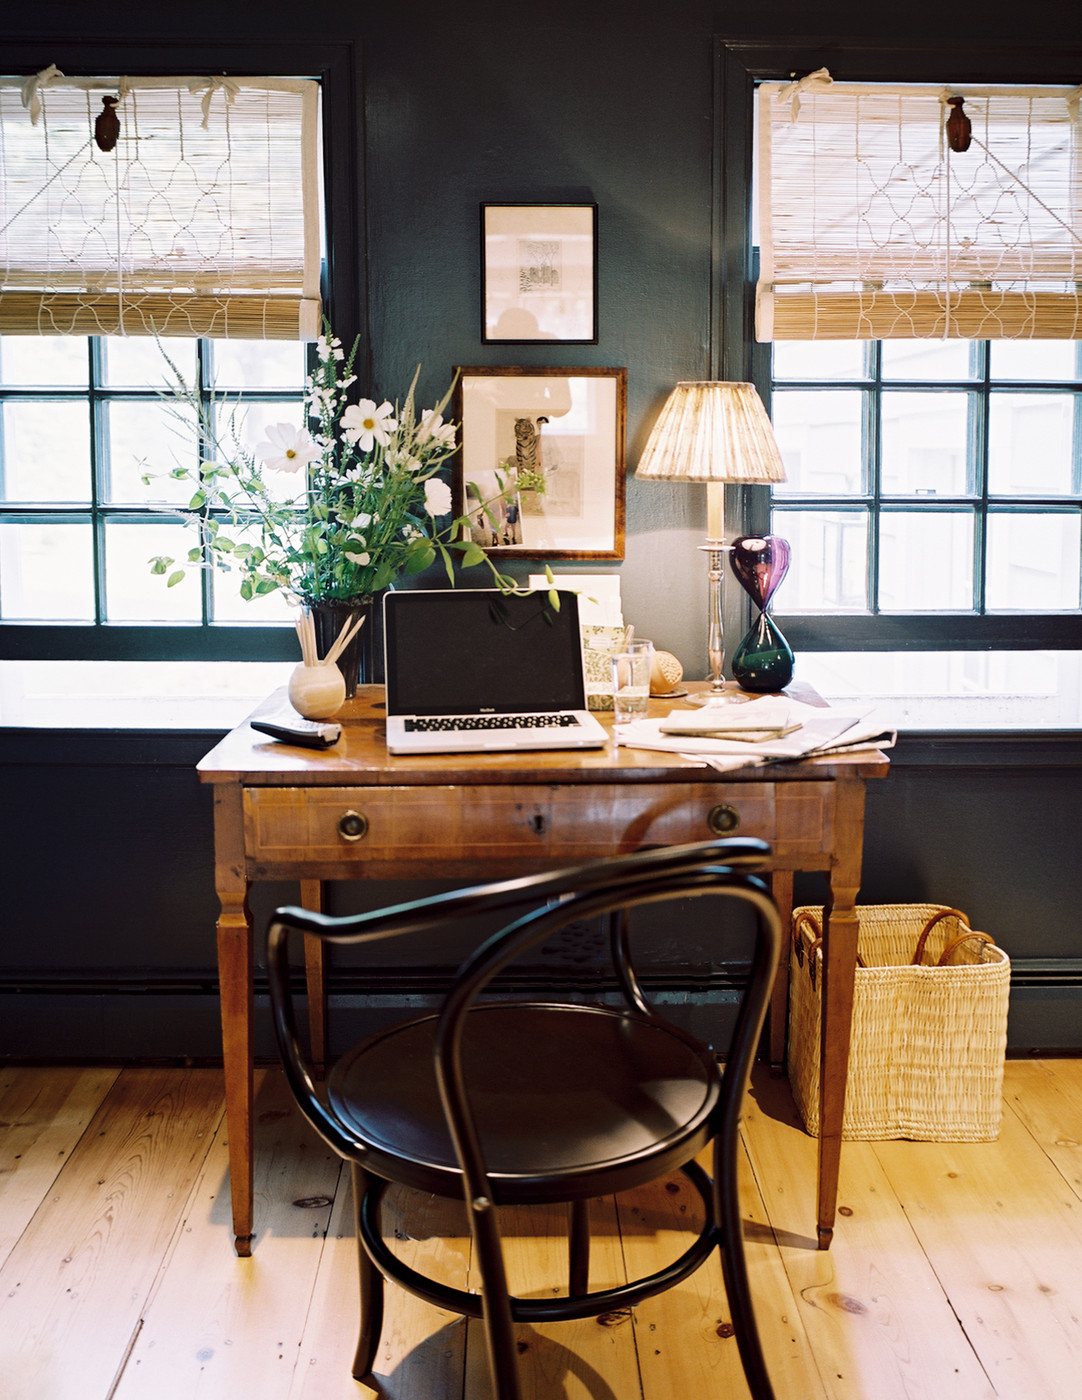 Desk against black wall and windows with light, via Lonny.